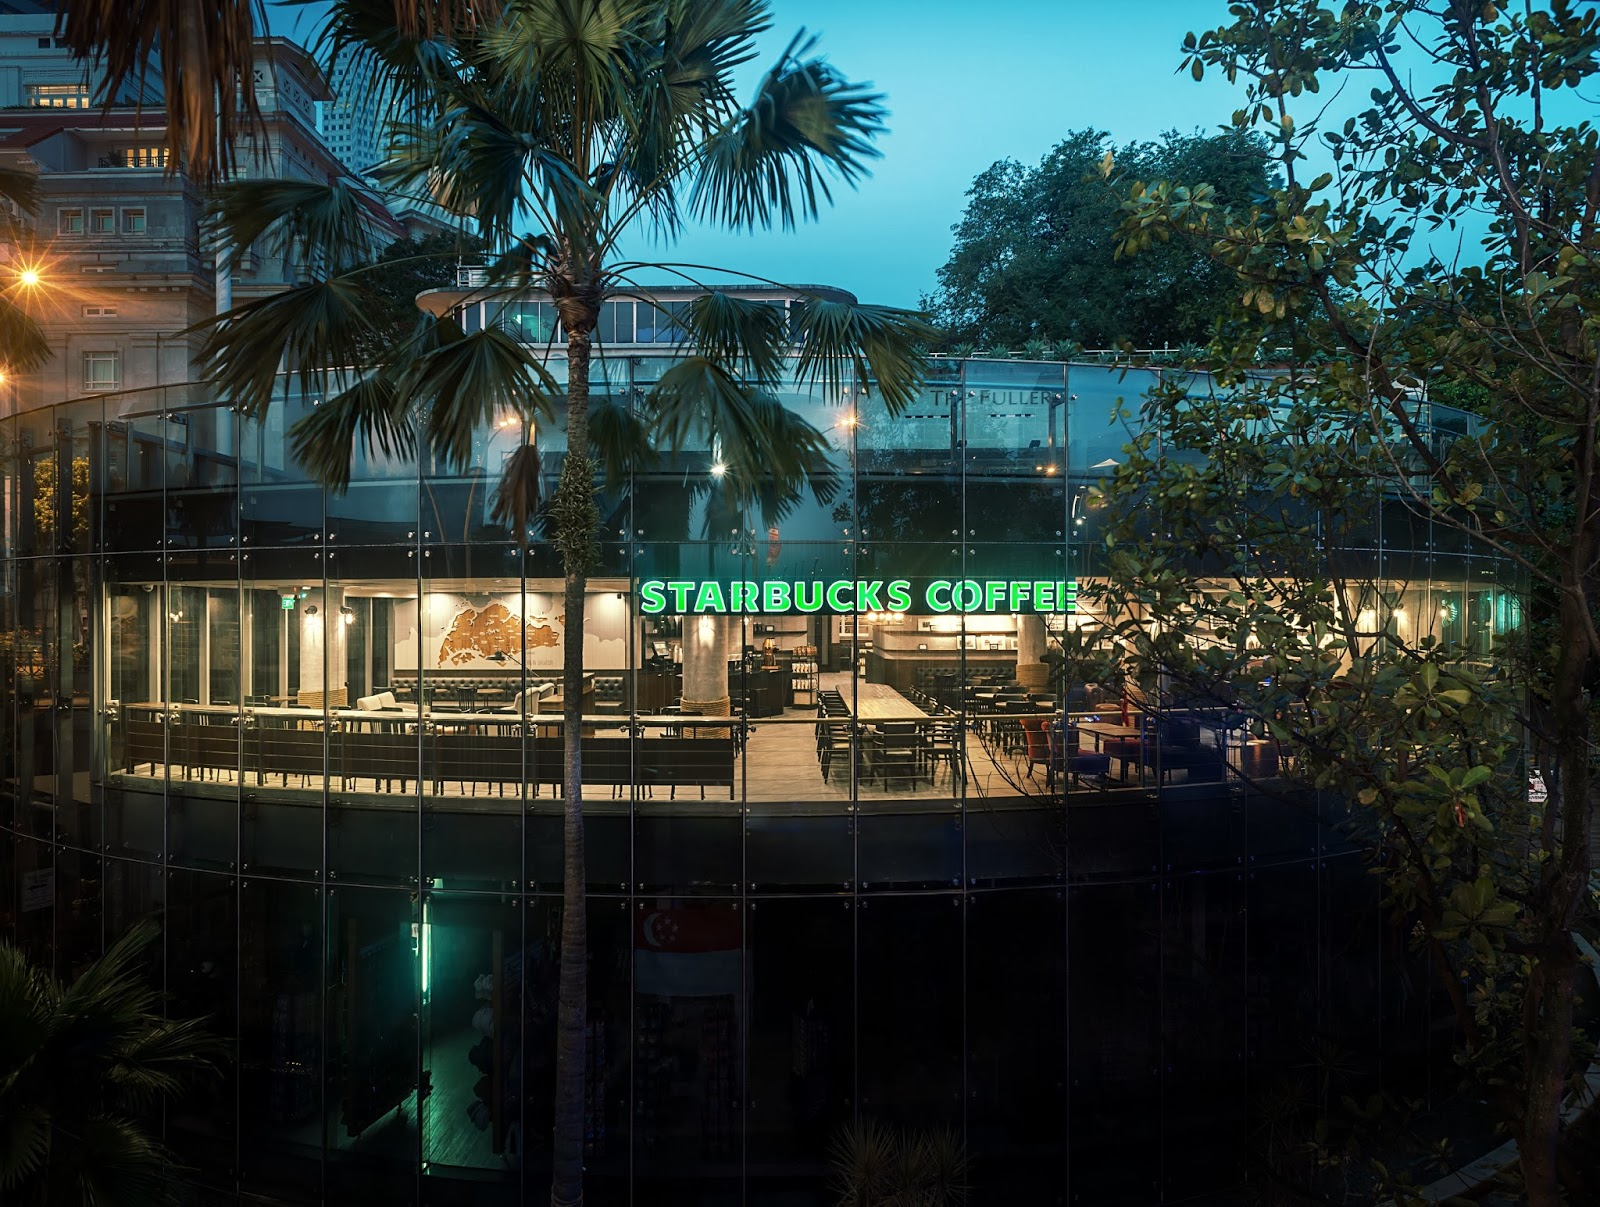 10 Starbucks Outlets In Singapore That Are Chill AF